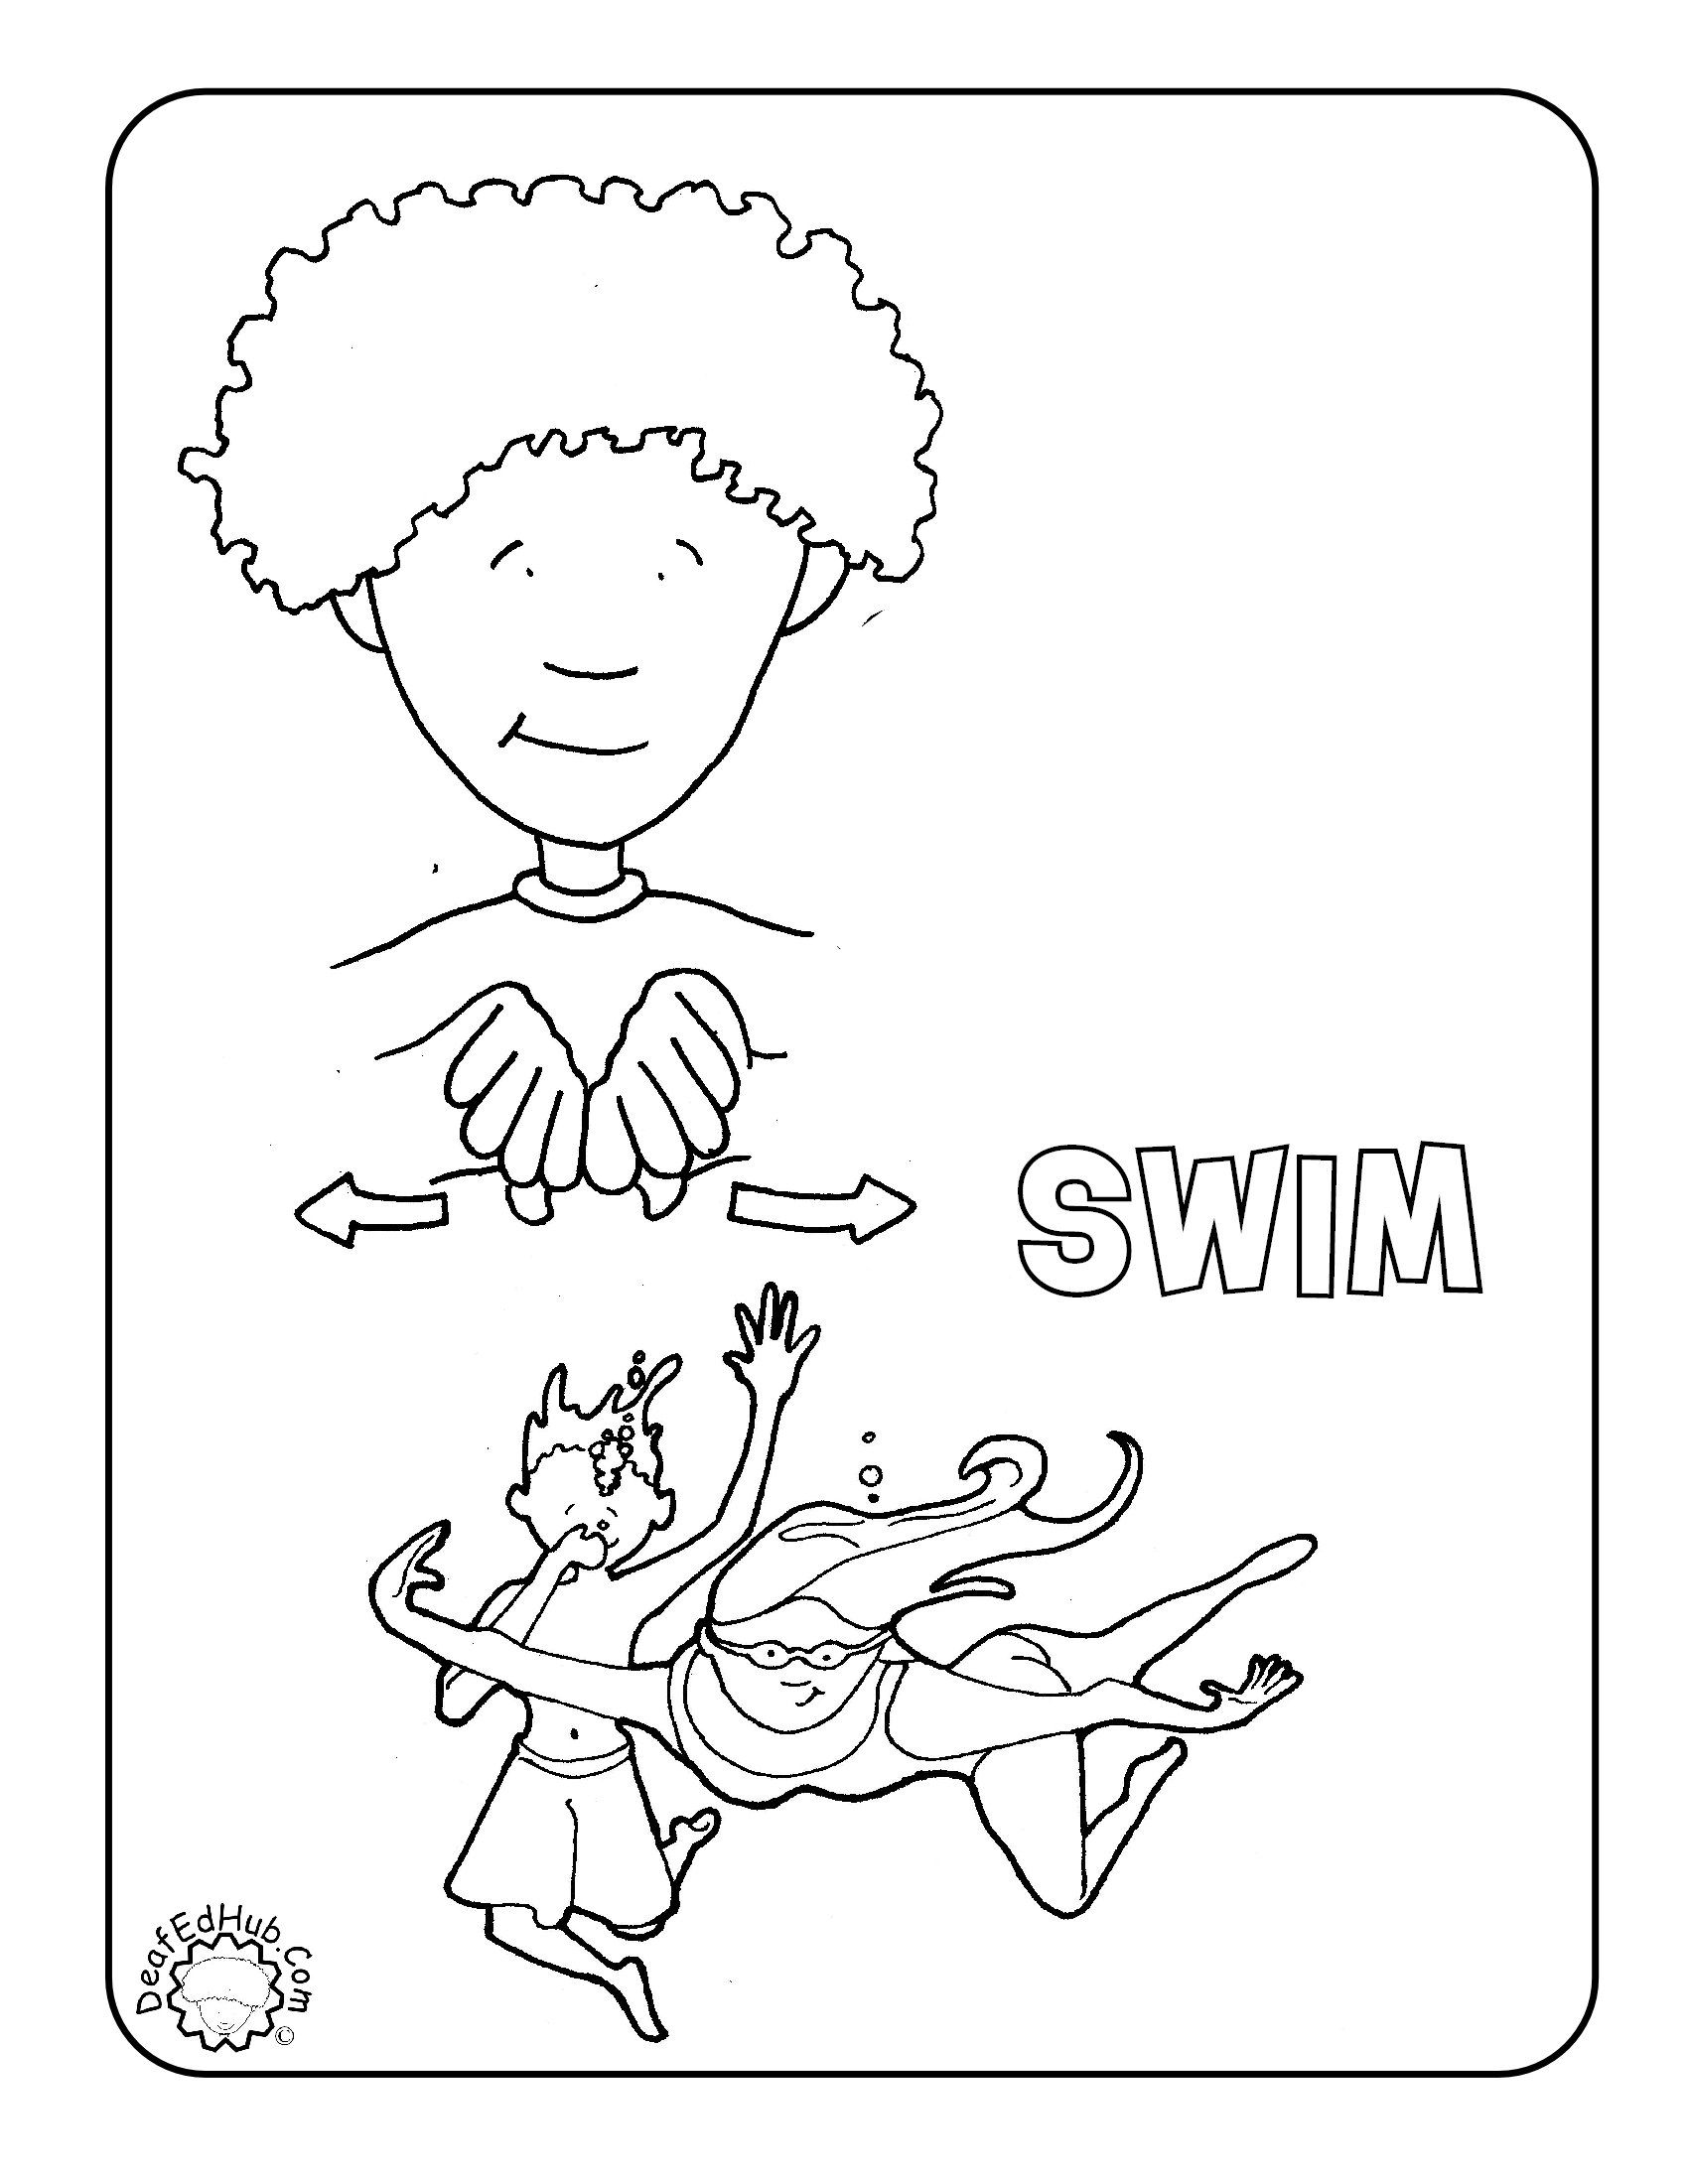 ASL coloring page for the sign \'swim\' #DeafEdHub | Discovering ASL ...